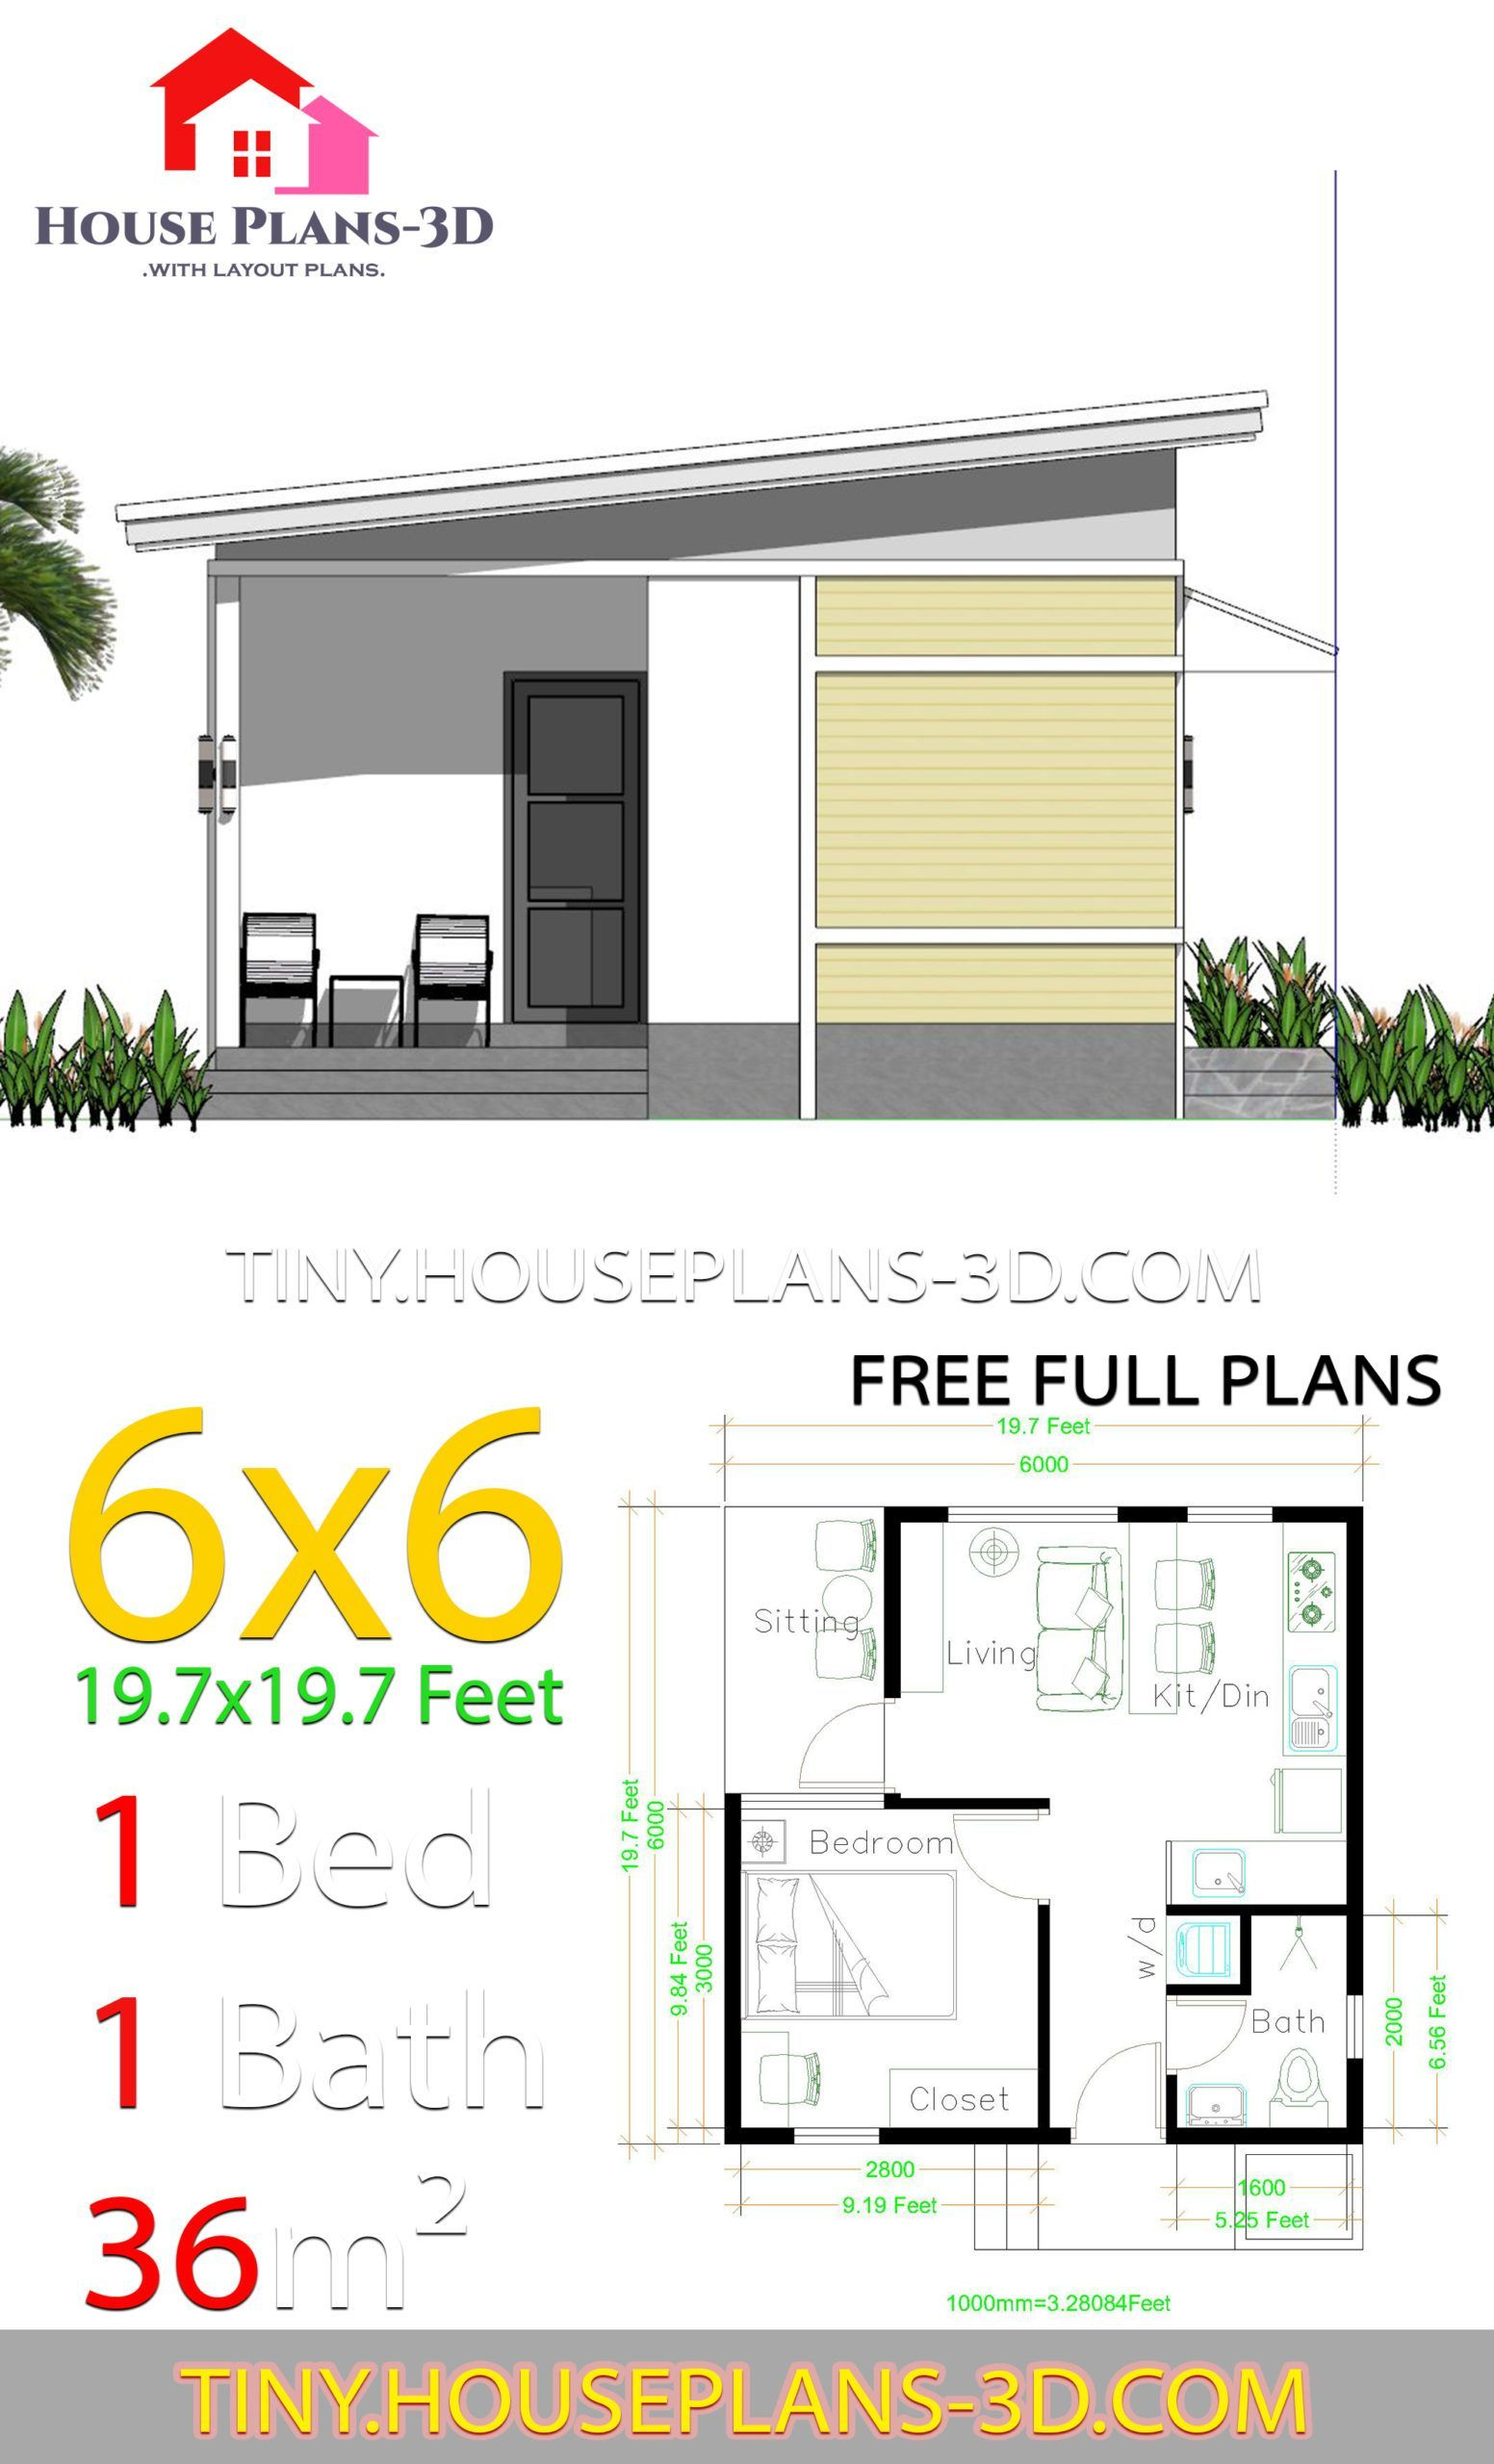 6x6 Bedroom House Plans Roof Shed Shed House Plans Space Tiny One Bed Room Space Plans 6x6 Wit House Plans Bedroom House Plans One Bedroom House Plans